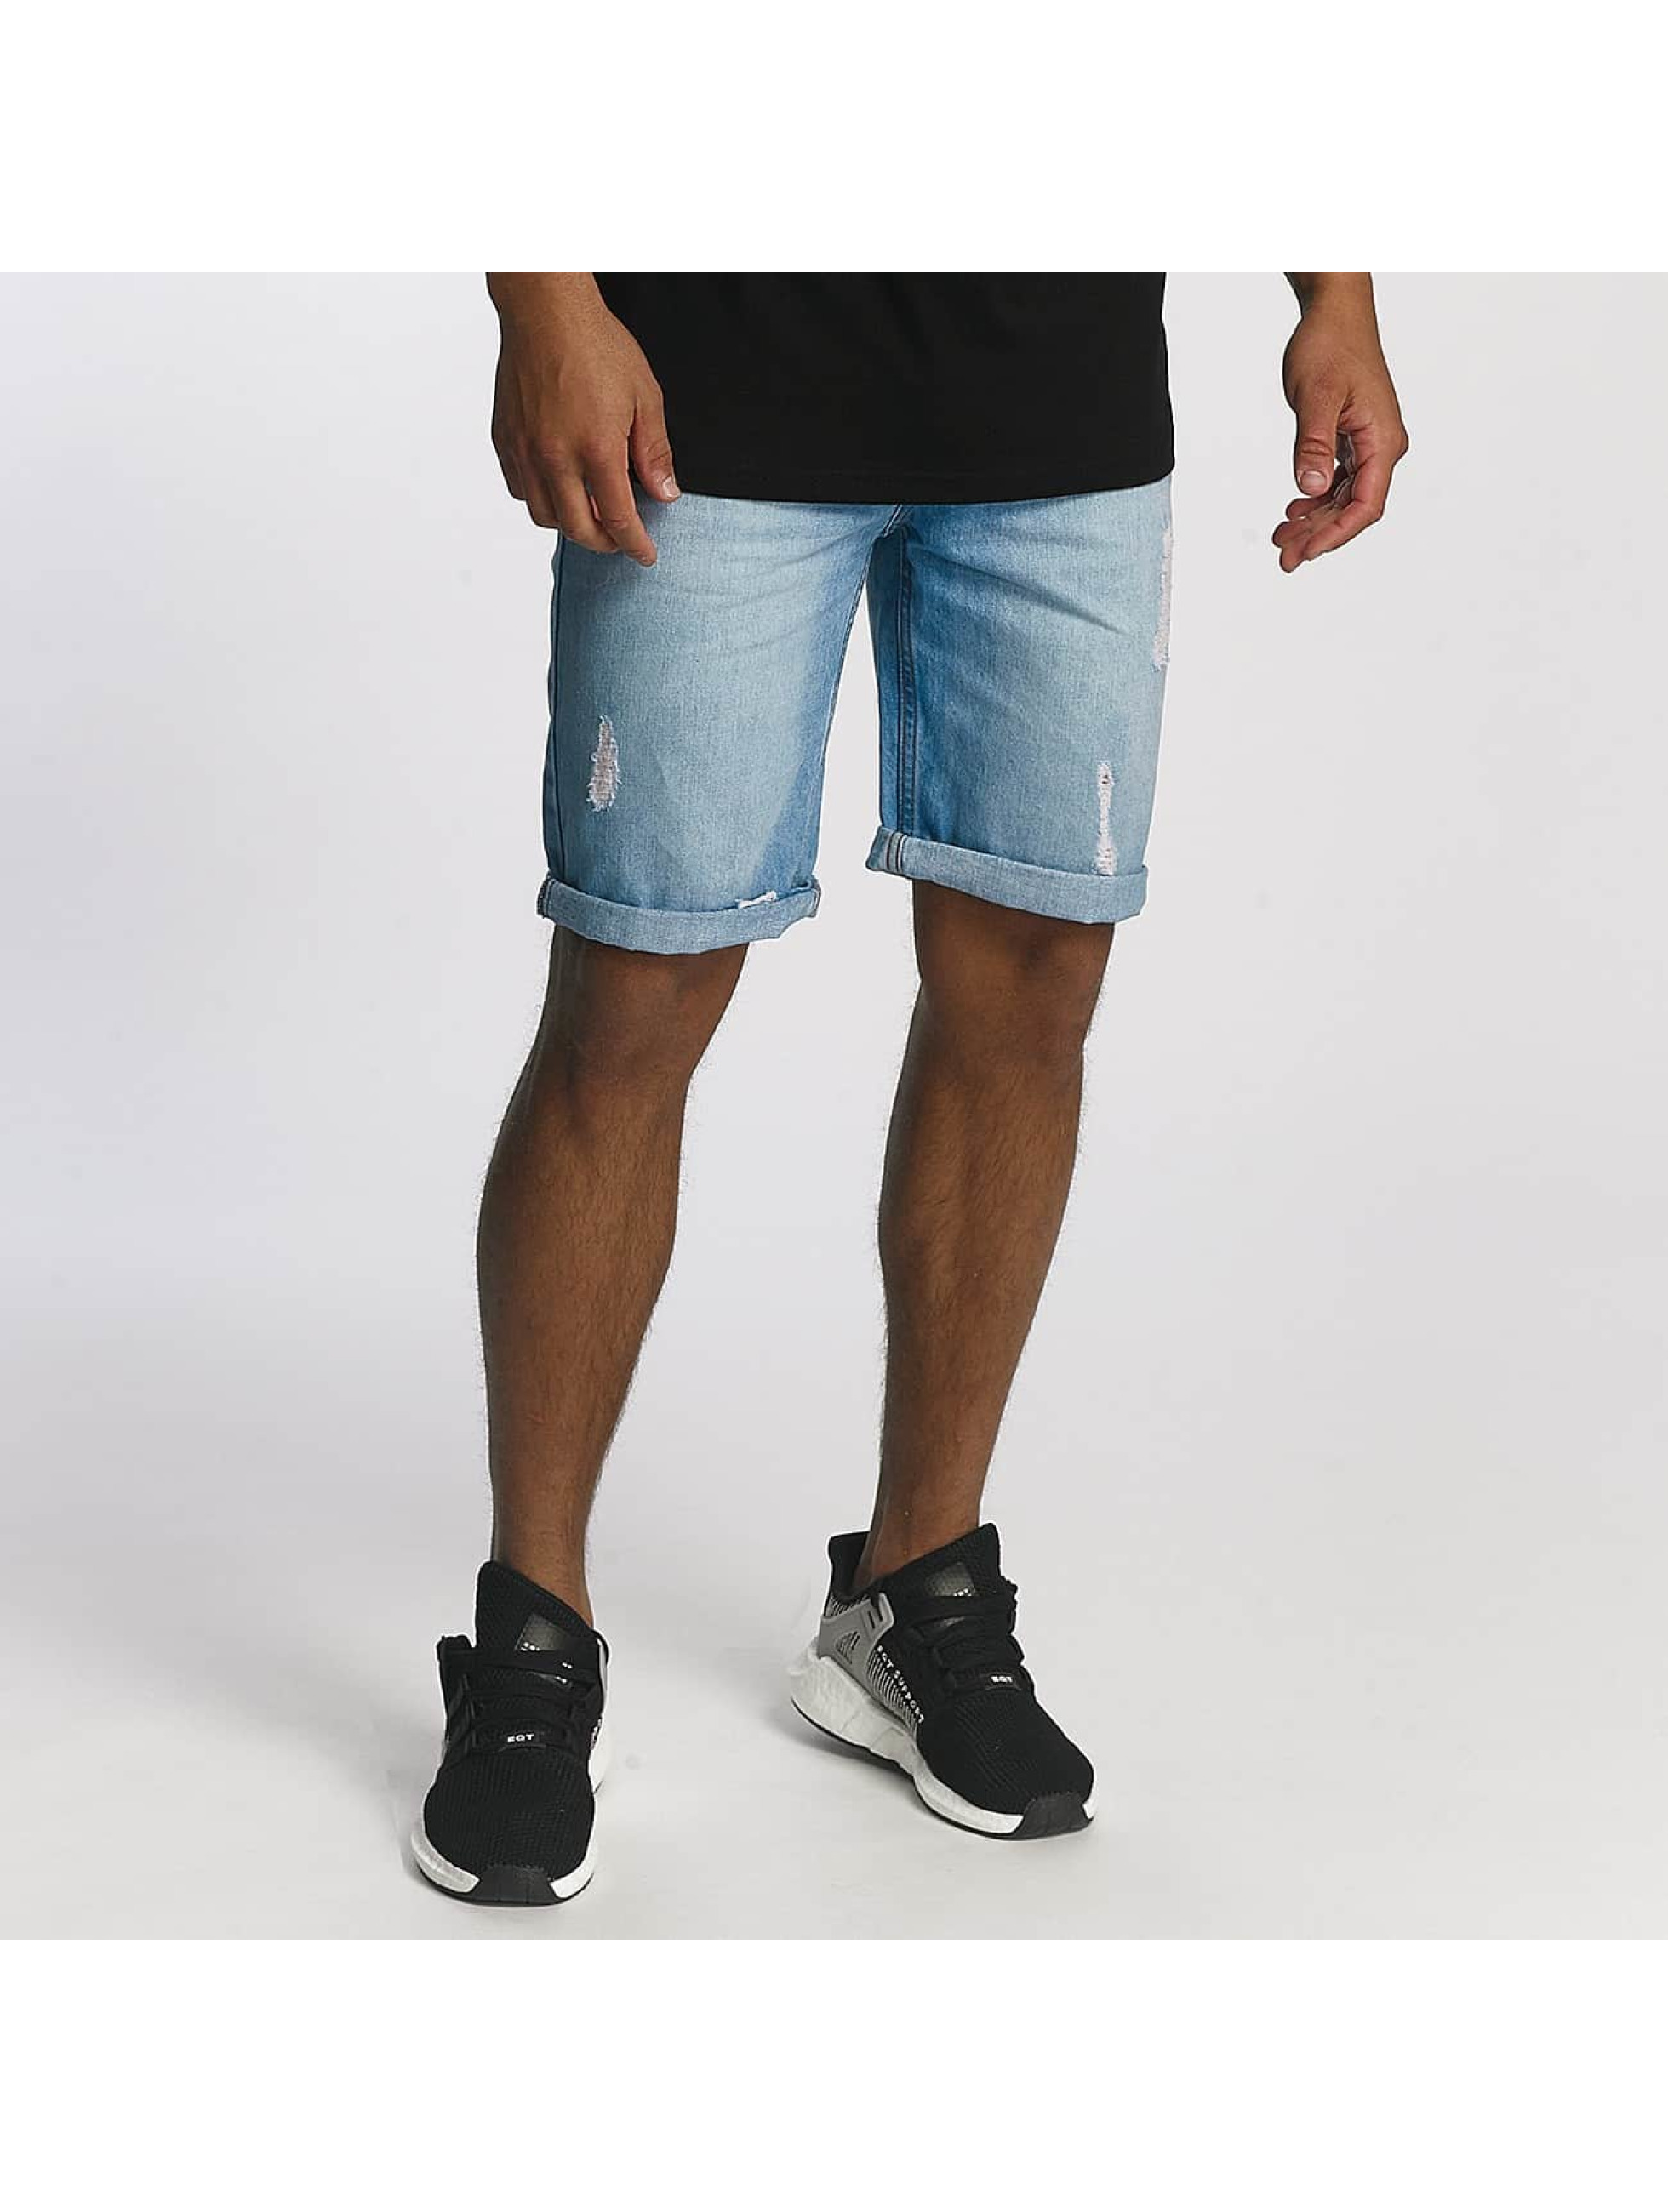 Rocawear / Short Relax in blue W 31